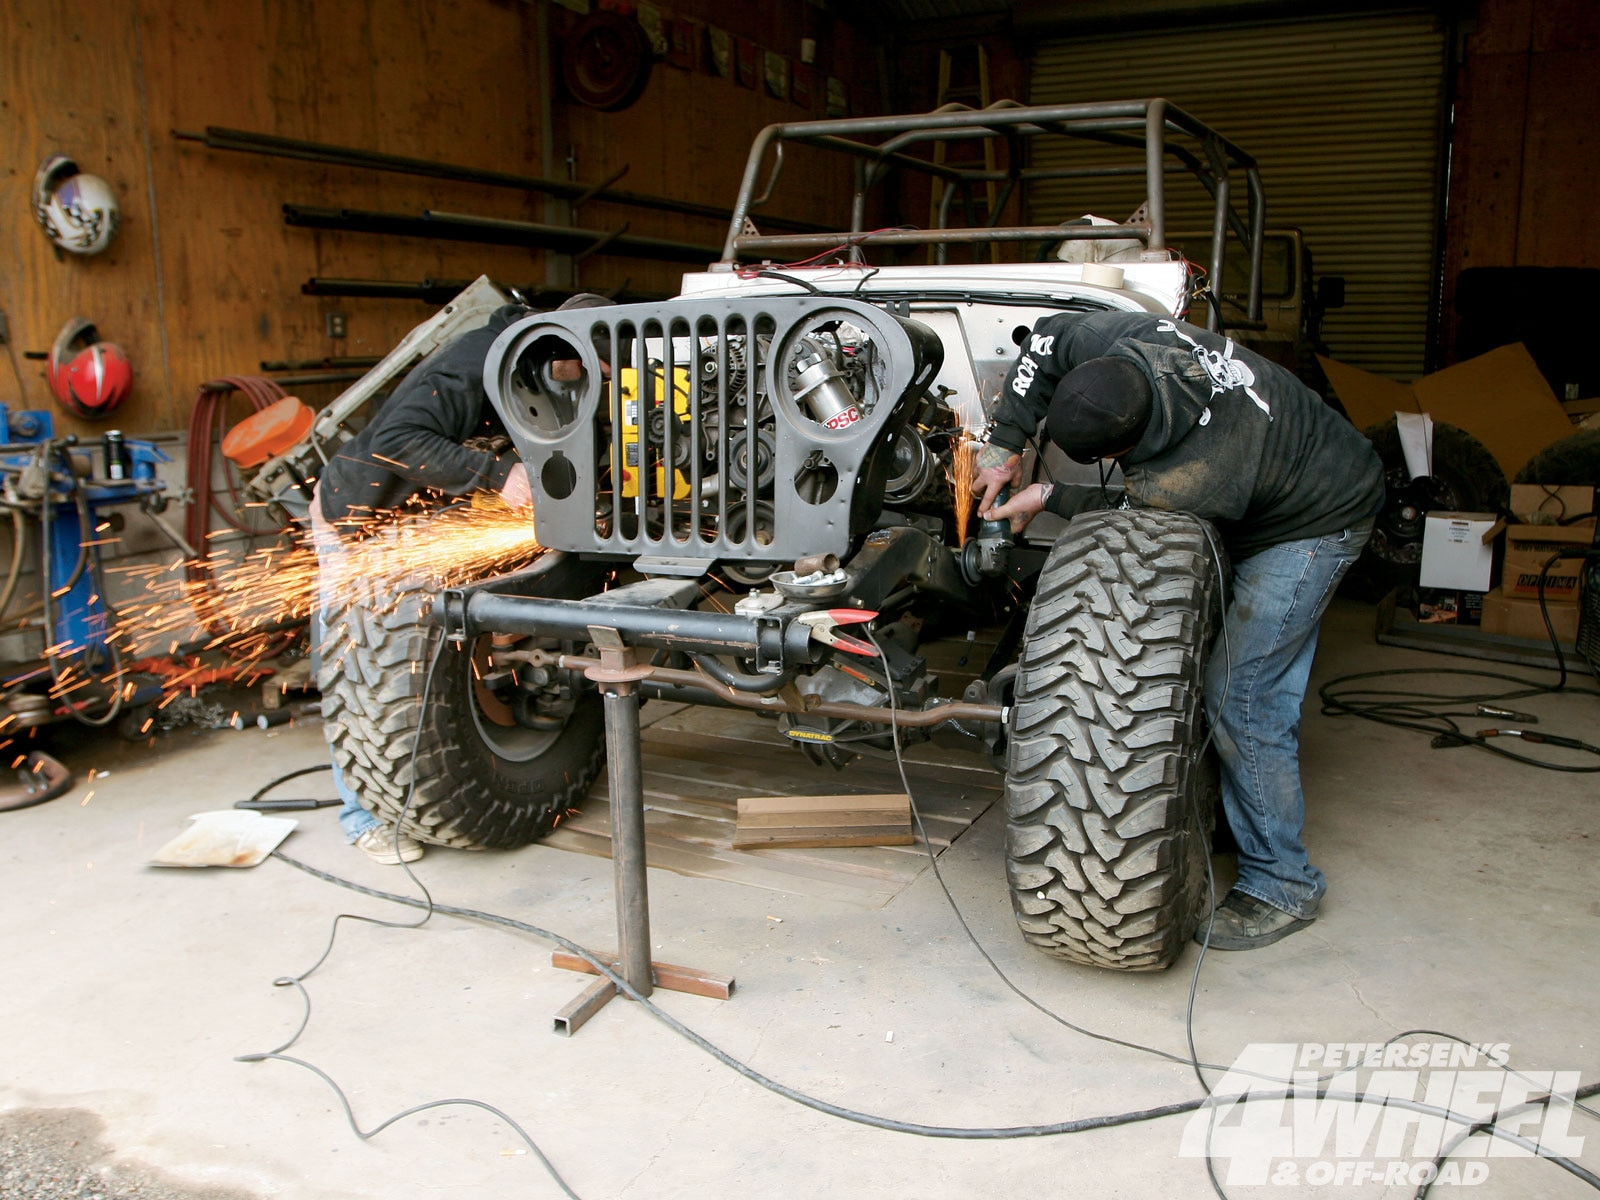 131 1005 08+jeep cj8 scrambler rock fenders suspension+frame grind